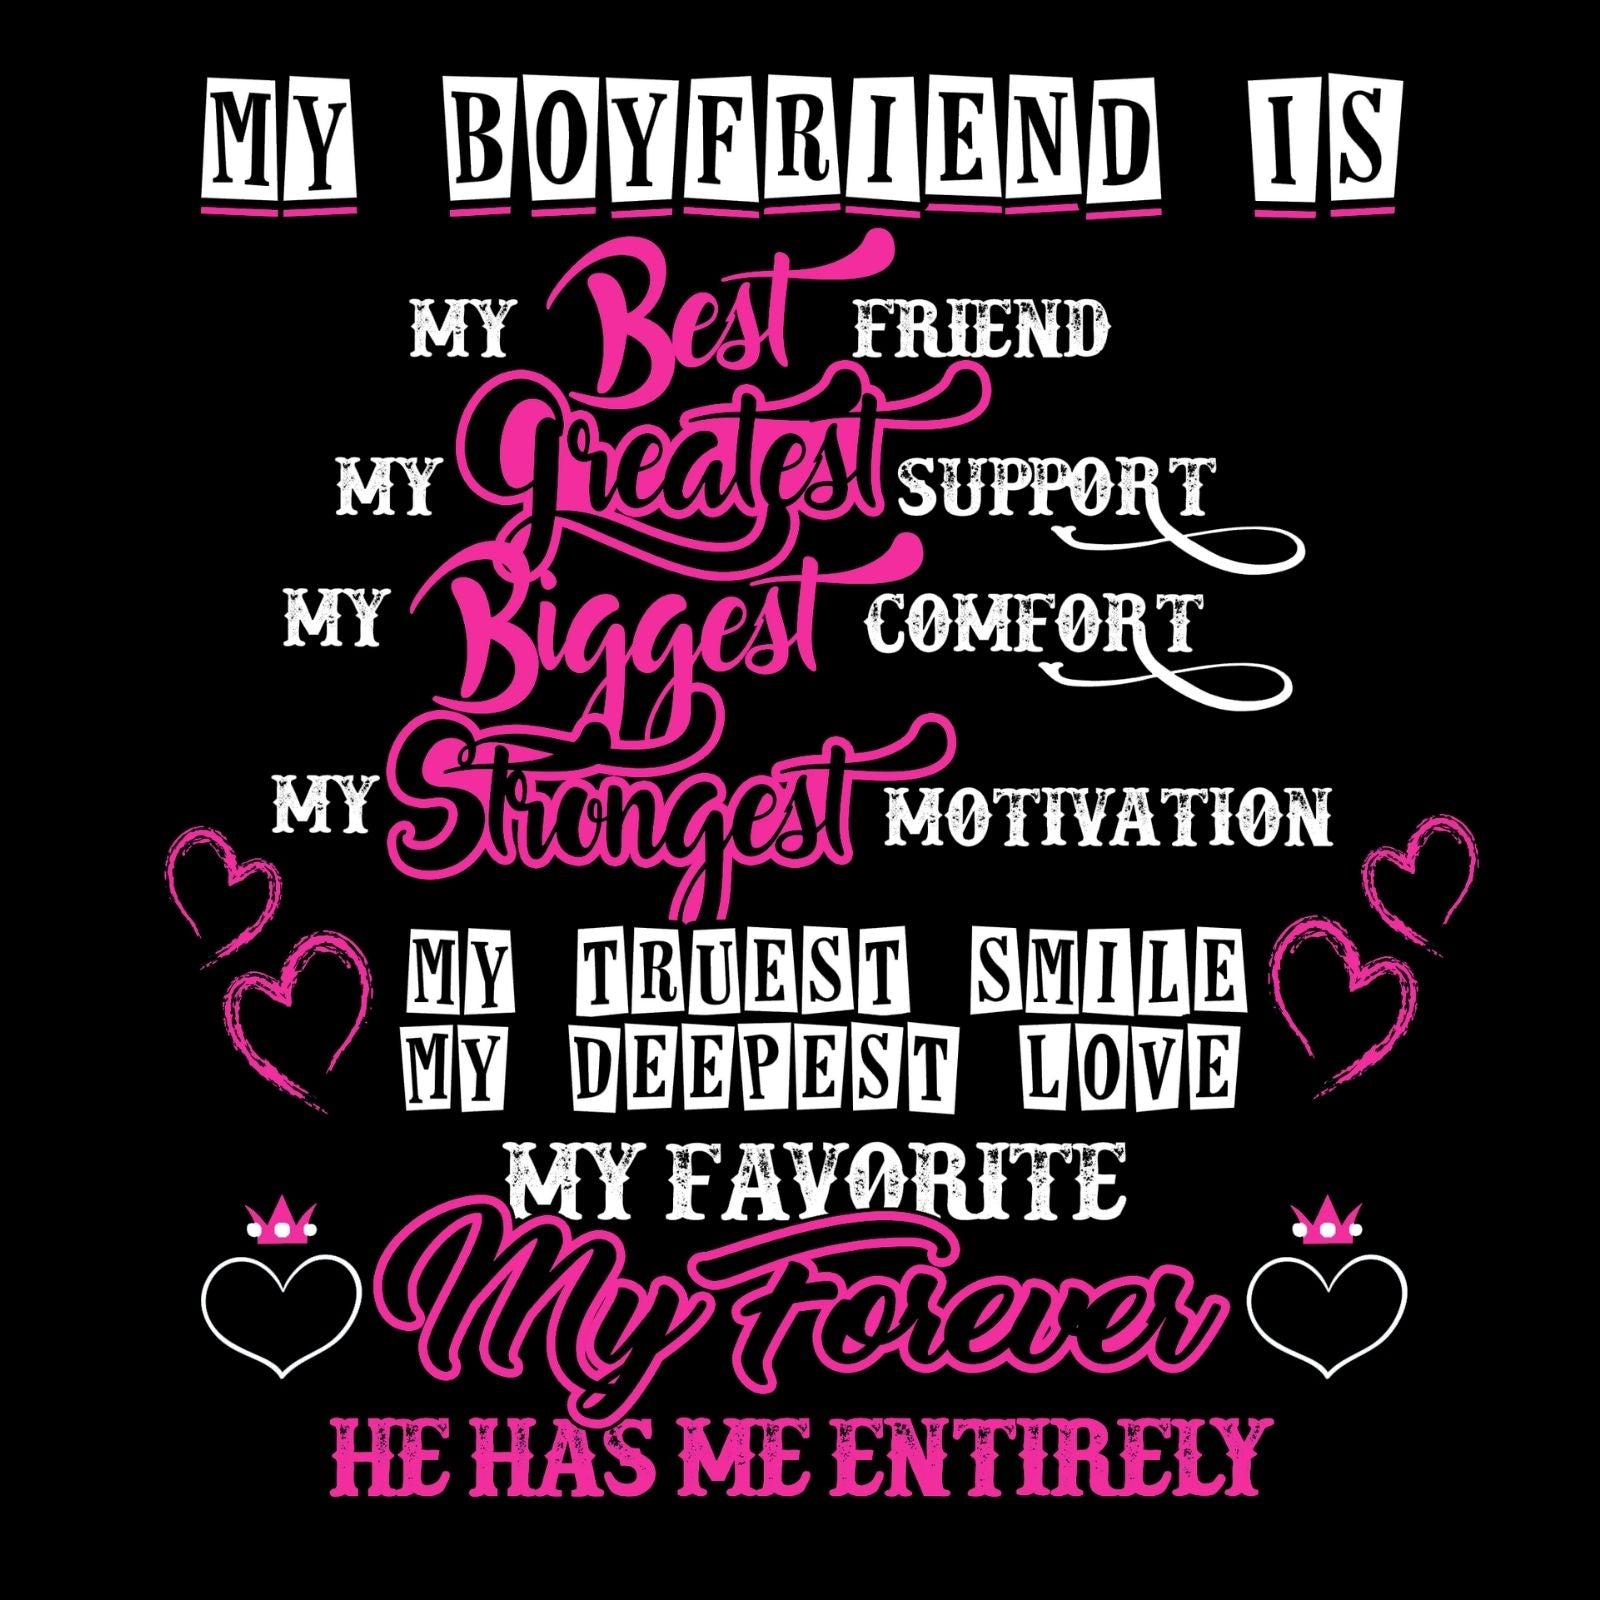 My Boyfriend Is My Best Friend My Greatest Support My Biggest Comfort My Strongest Motivation My Truest Smile My Deepest Love My Favorite My Forever He Has Me Entirely - Bastard Graphics